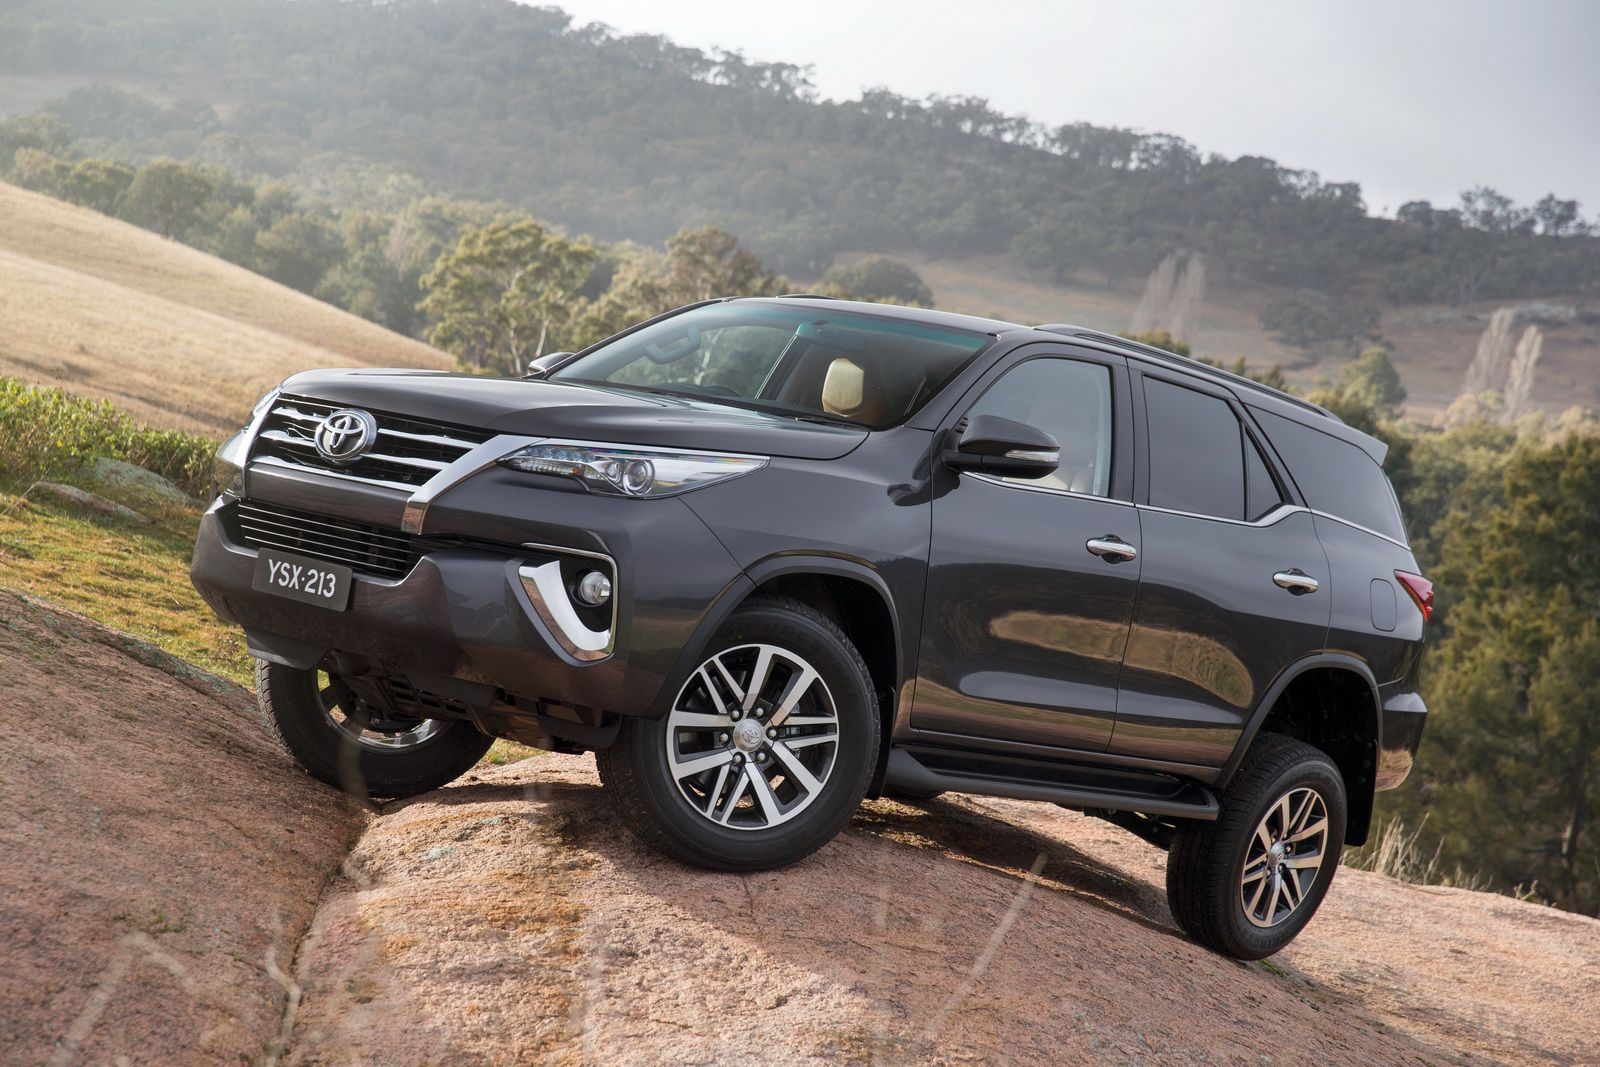 Toyota has unveiled the all new fortuner suv in australia and thailand